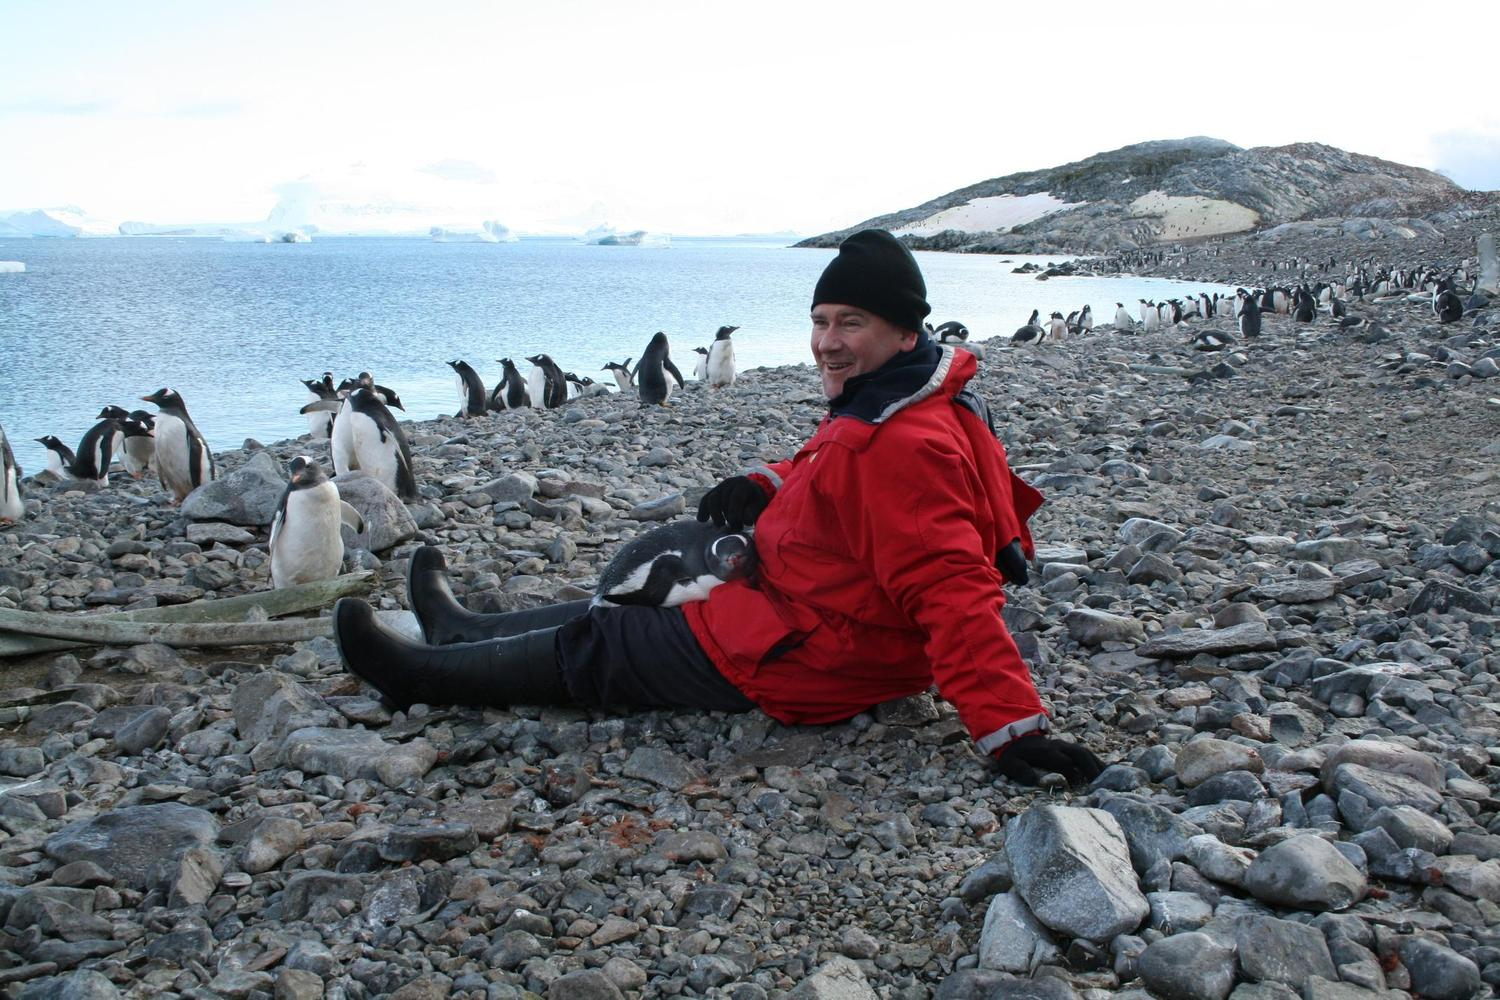 antarctica-antarctic-peninsula-man-with-penguin-on-lap